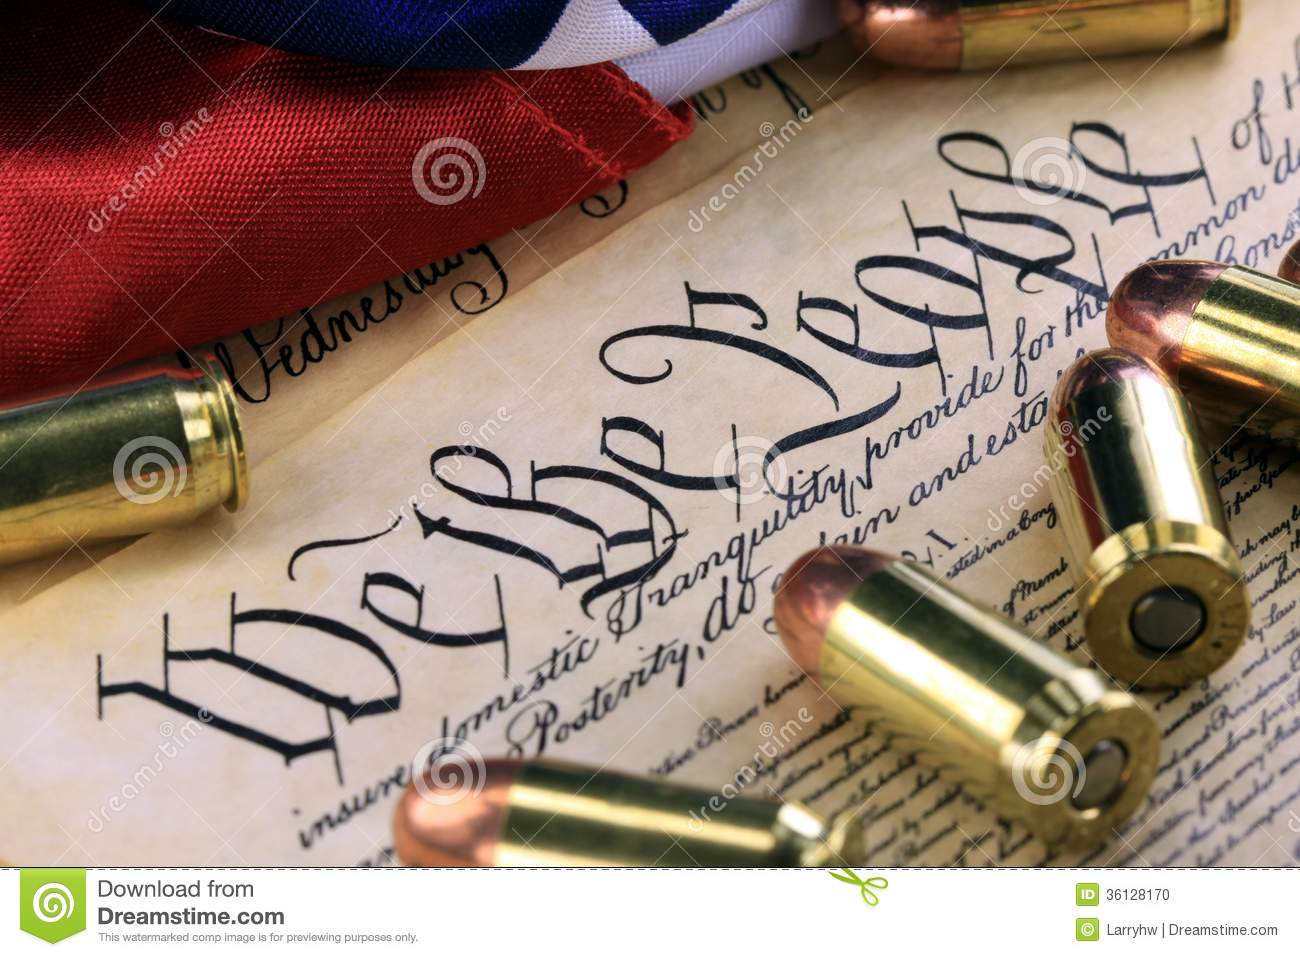 history of the second amendment Link here anyone who wishes to avoid being willfully ignorant about the reasons and background to the second amendment and presently feels lacking in knowledge will find this essay immensely clarifying.